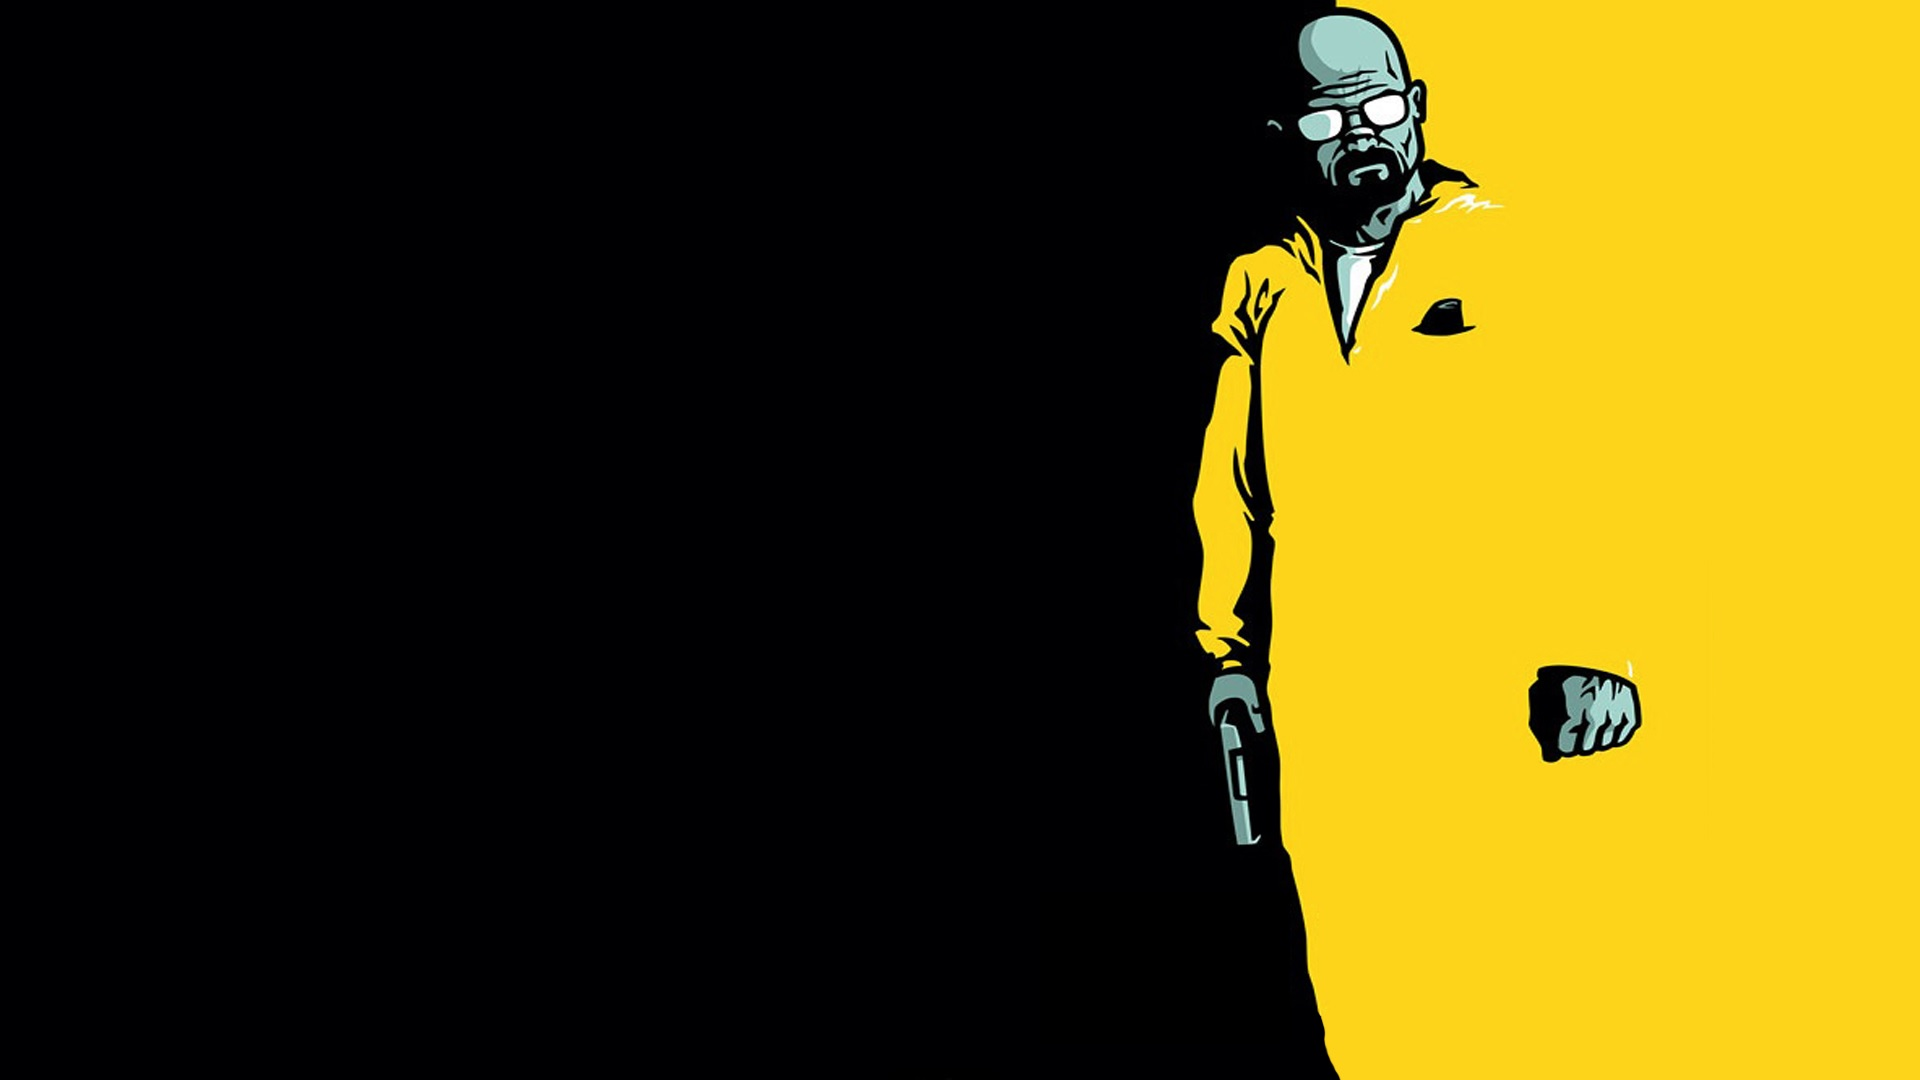 Breaking Bad Hd Iphone Wallpaper Breaking Bad Full Hd Papel De Parede And Background Image